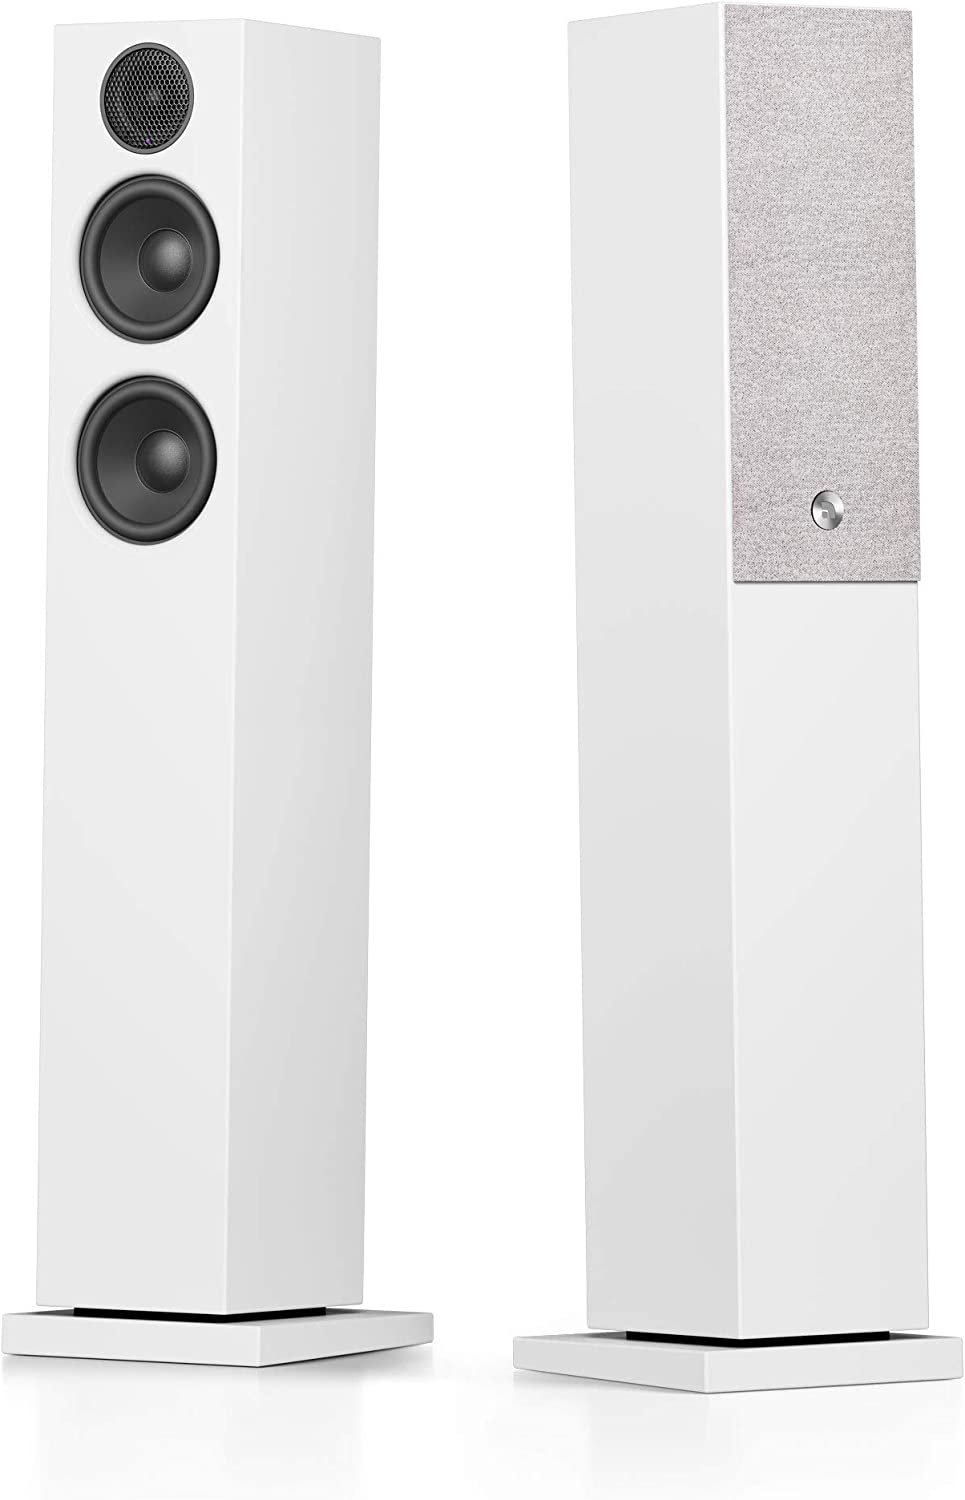 Audio Pro A36 HiFi Stereo Bluetooth WiFi Powered Wireless Multi-Room Home Theater Floor Standing Tower Speakers for Ultimate TV Sound Experience - Pair, White